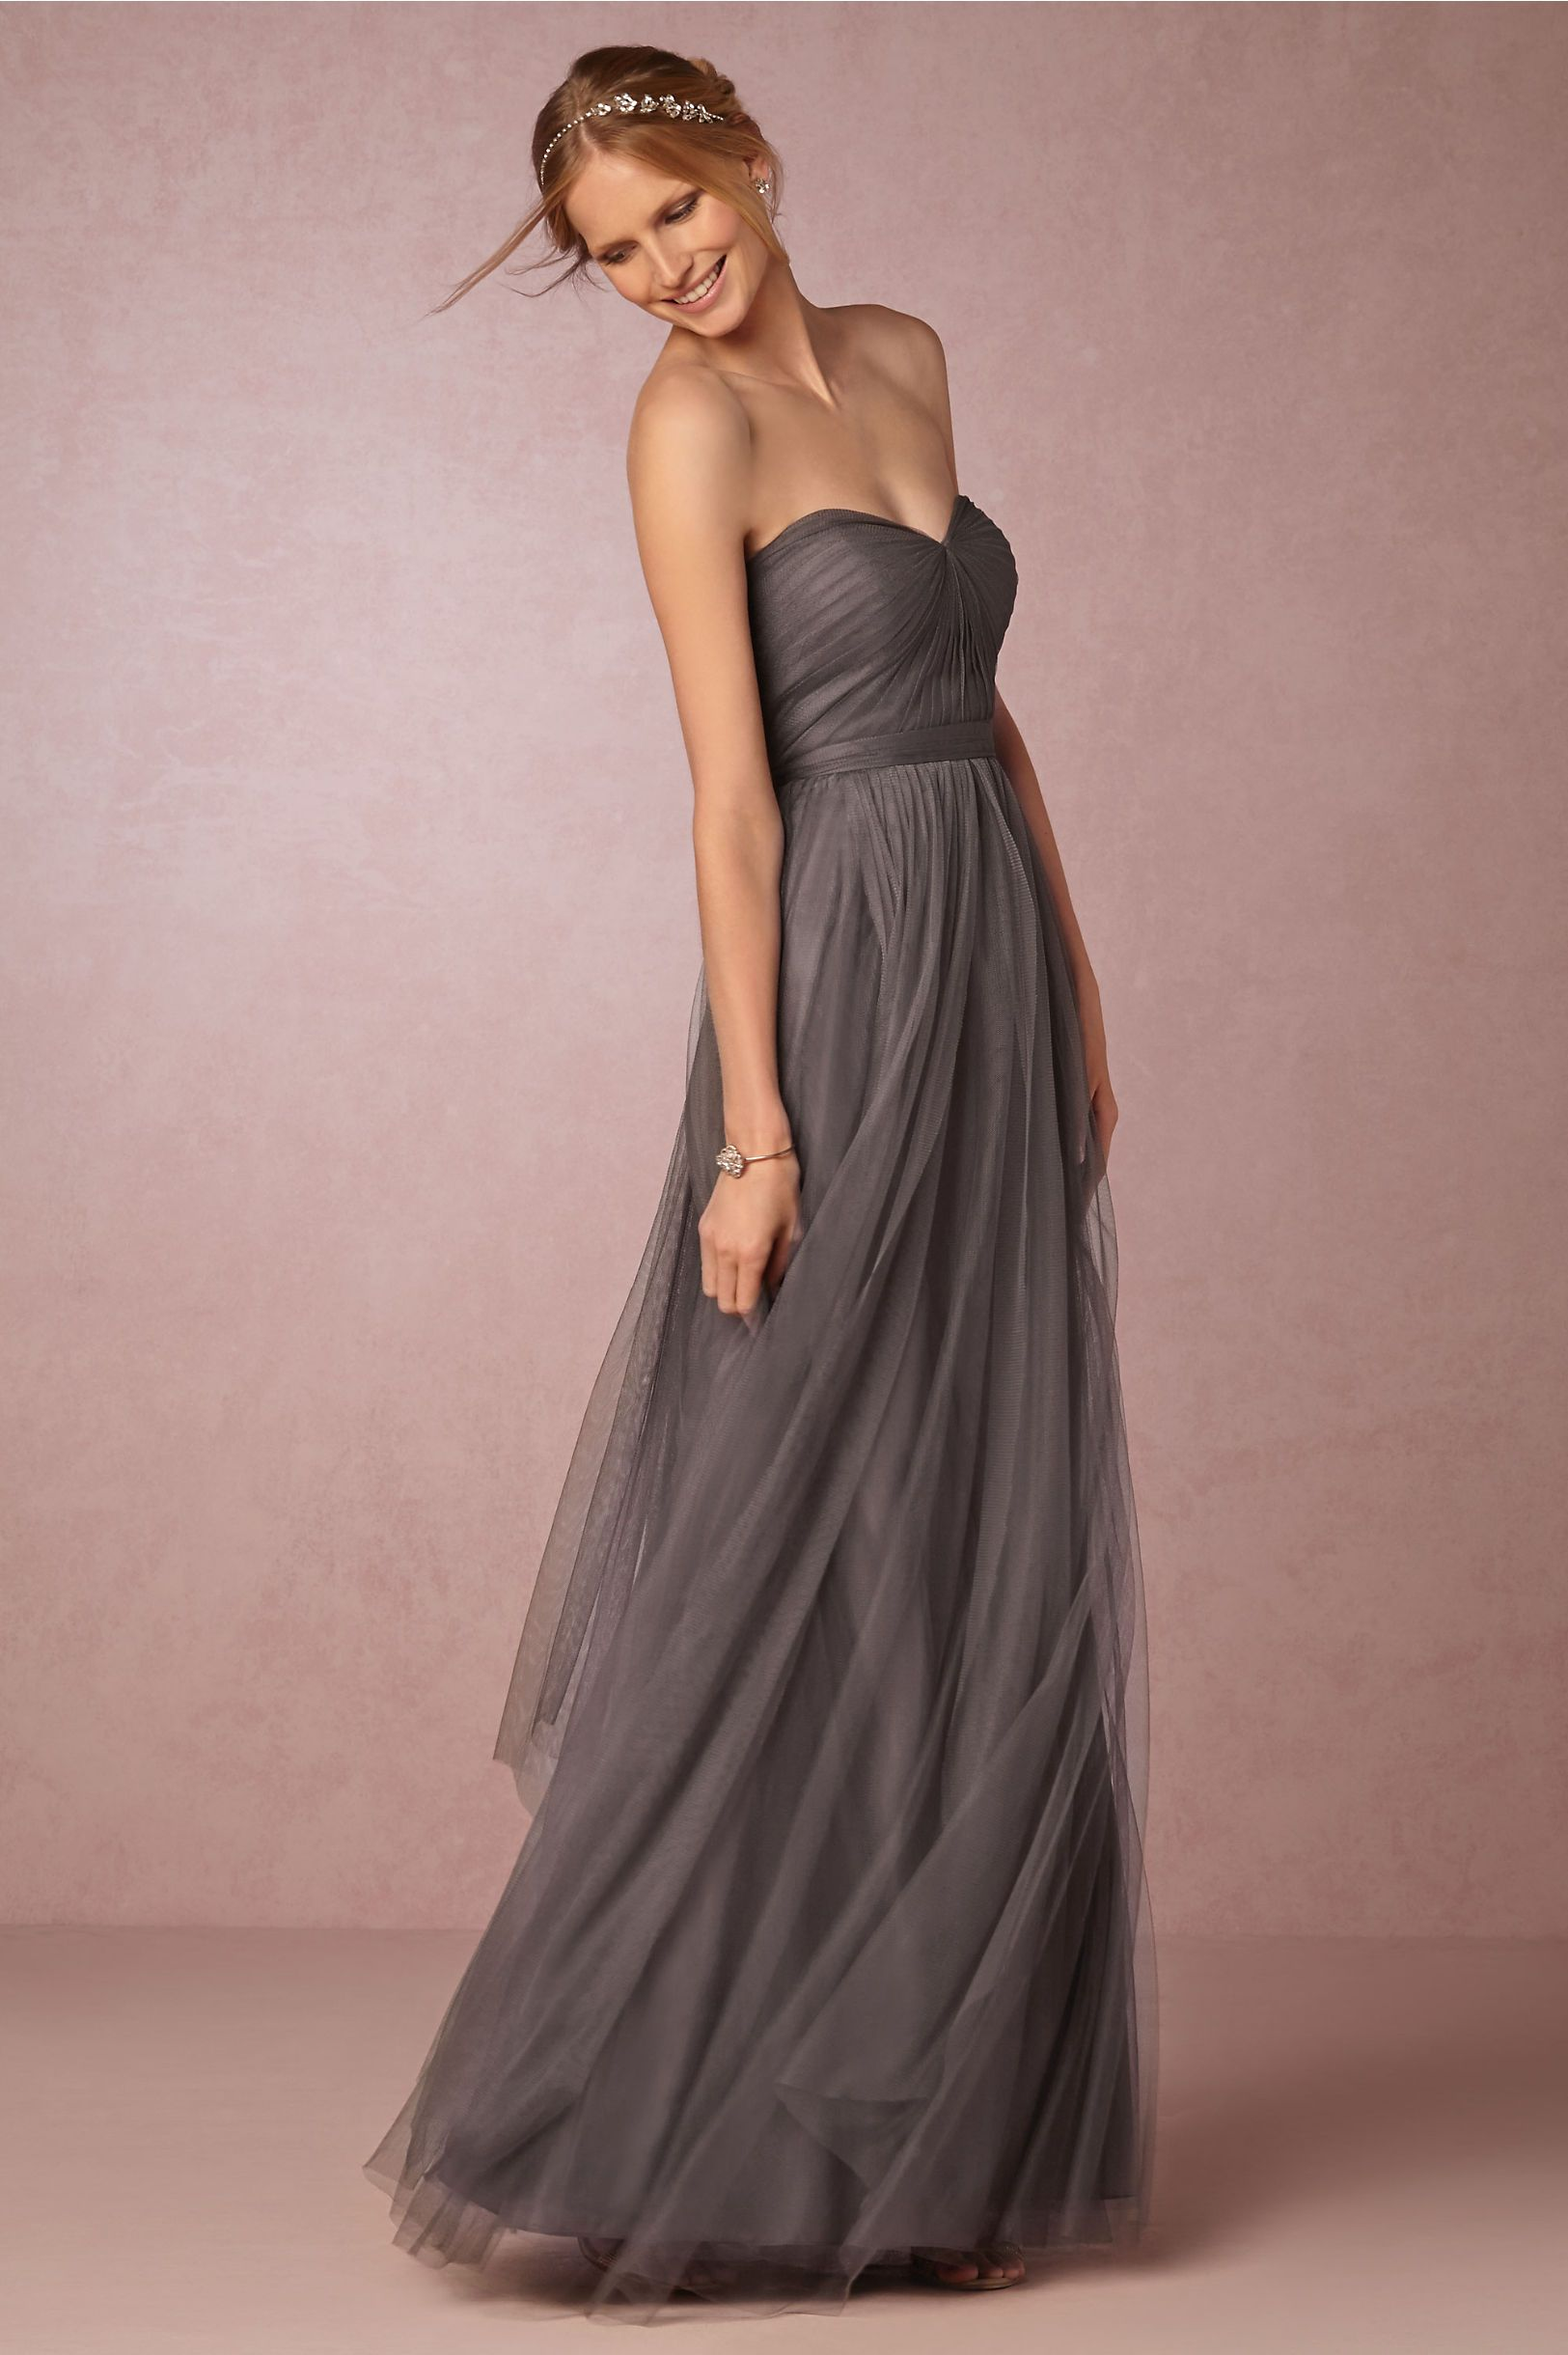 strapless dark grey bridesmaids dress  26dfb682694f